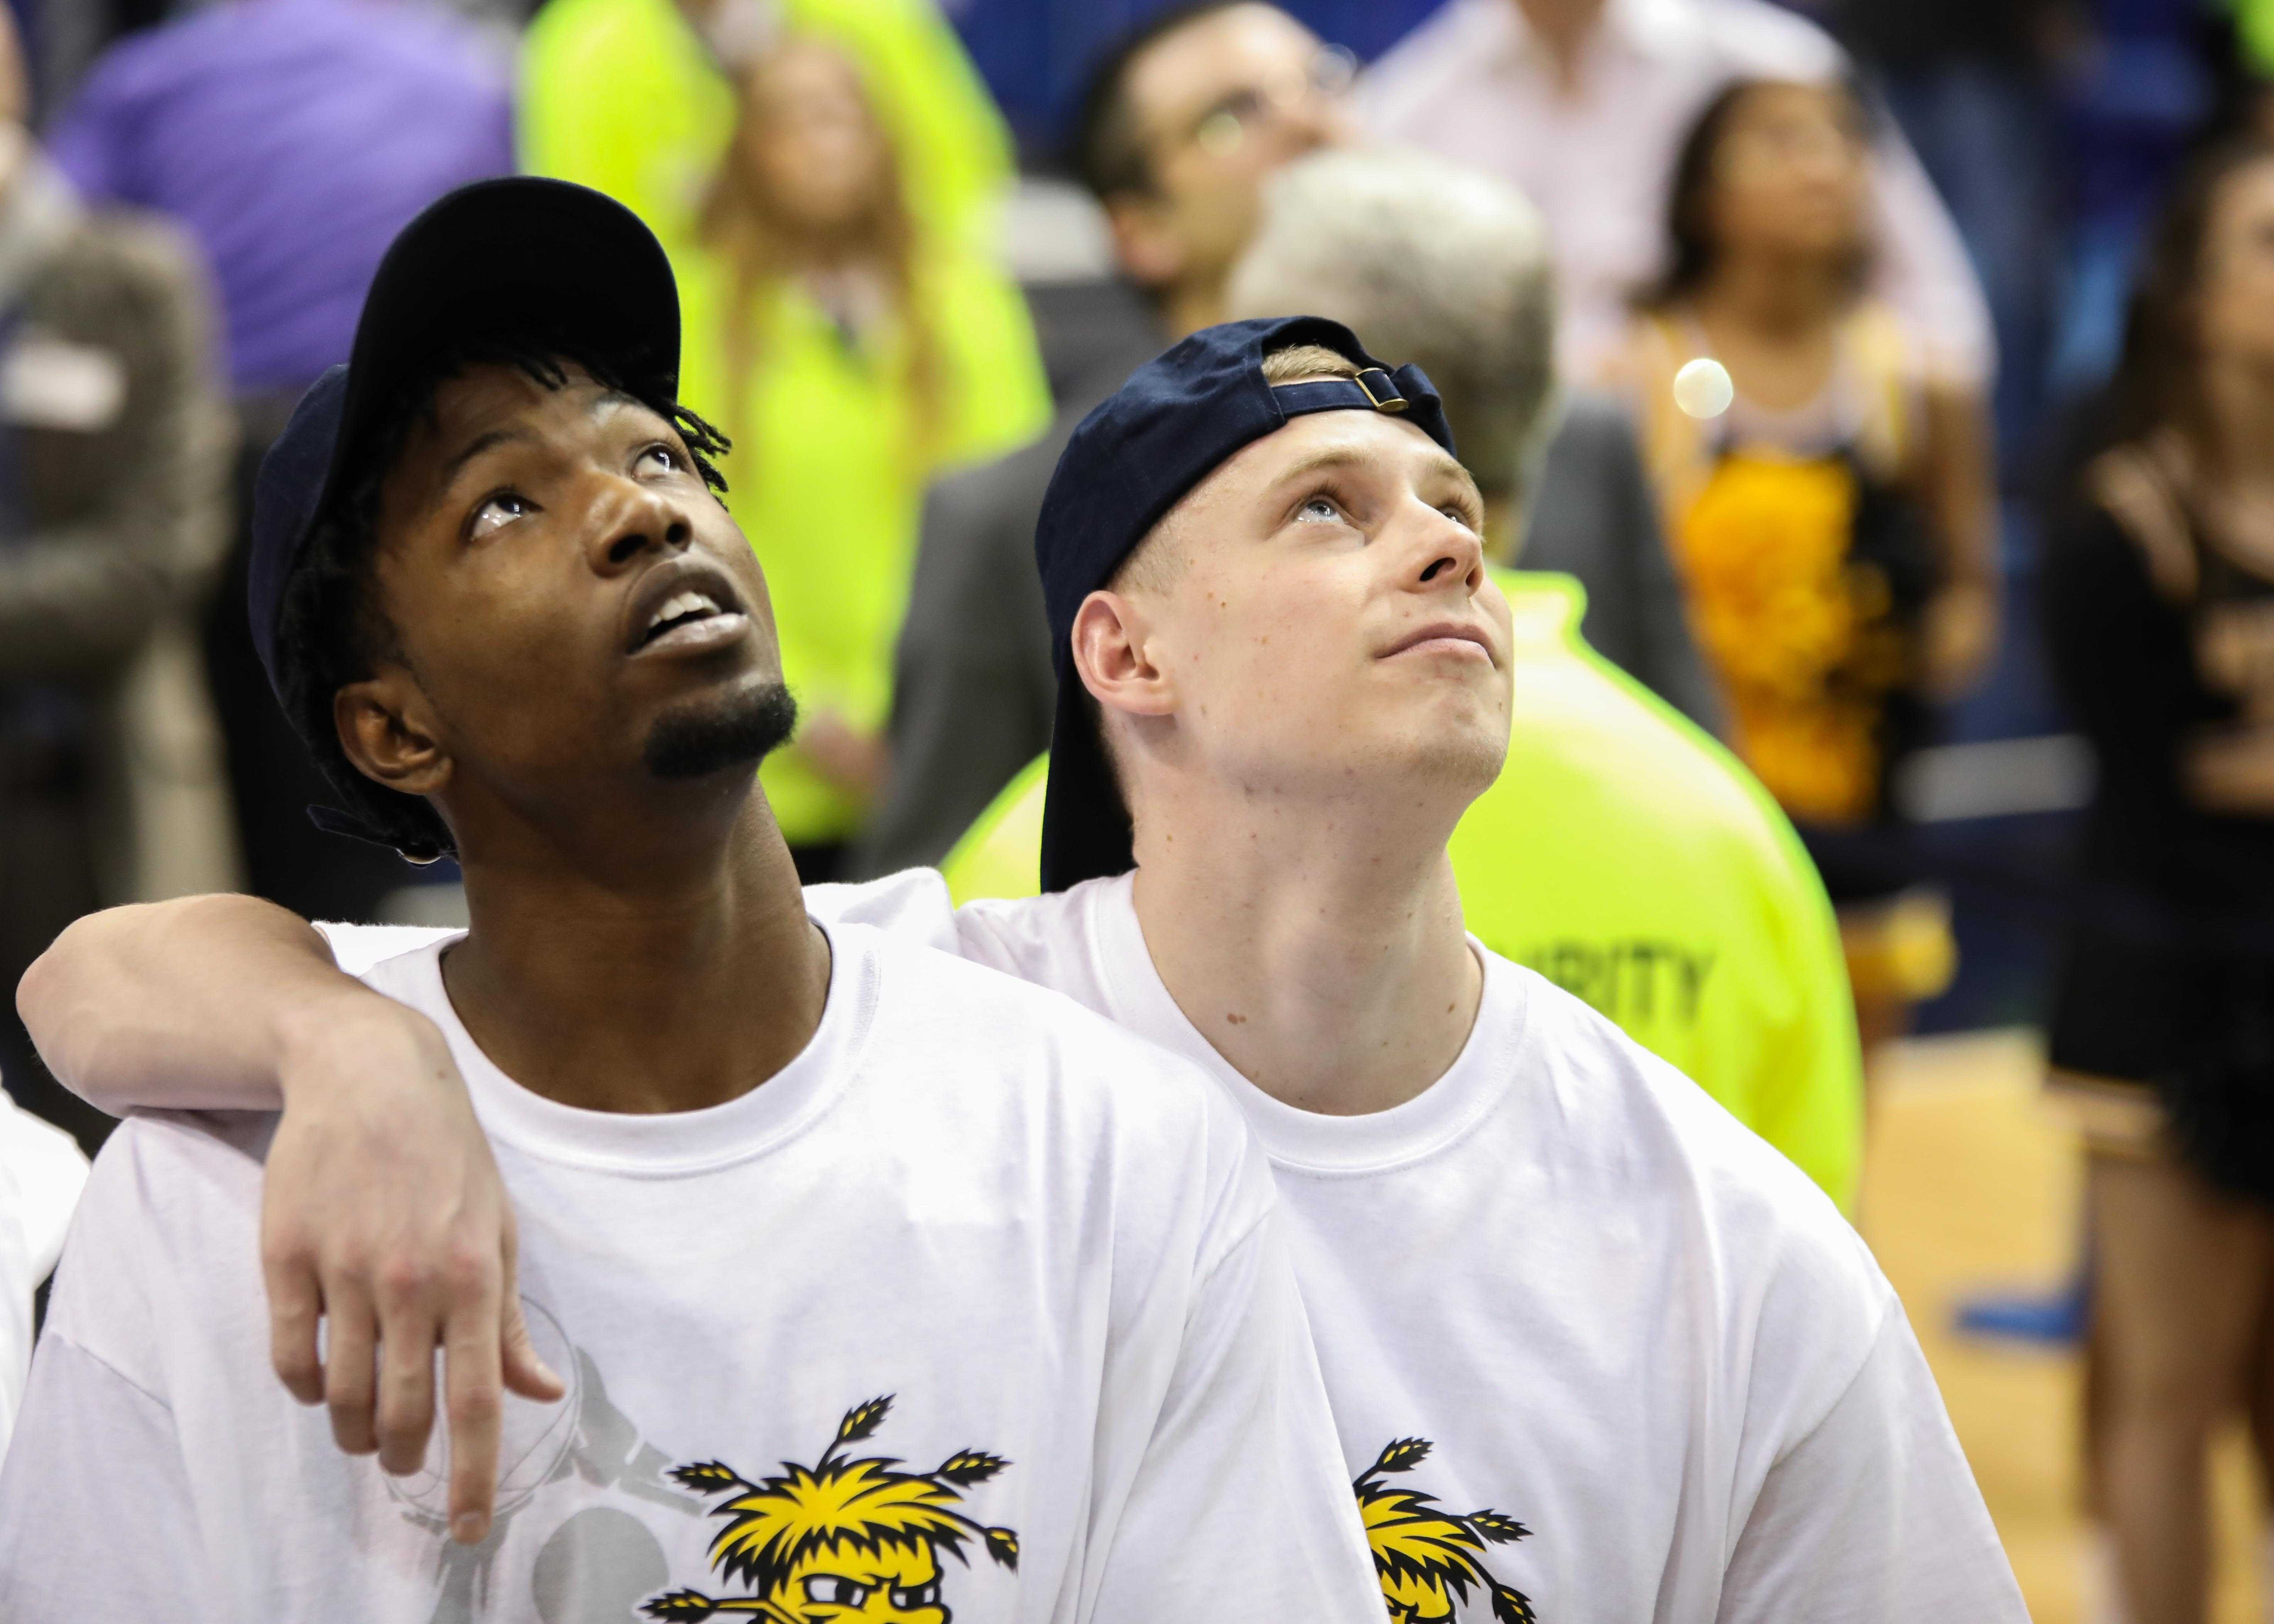 Zach Brown (left) and Zach Bush watch the One Shining Moment video. Senior Bush appeared to tear up.